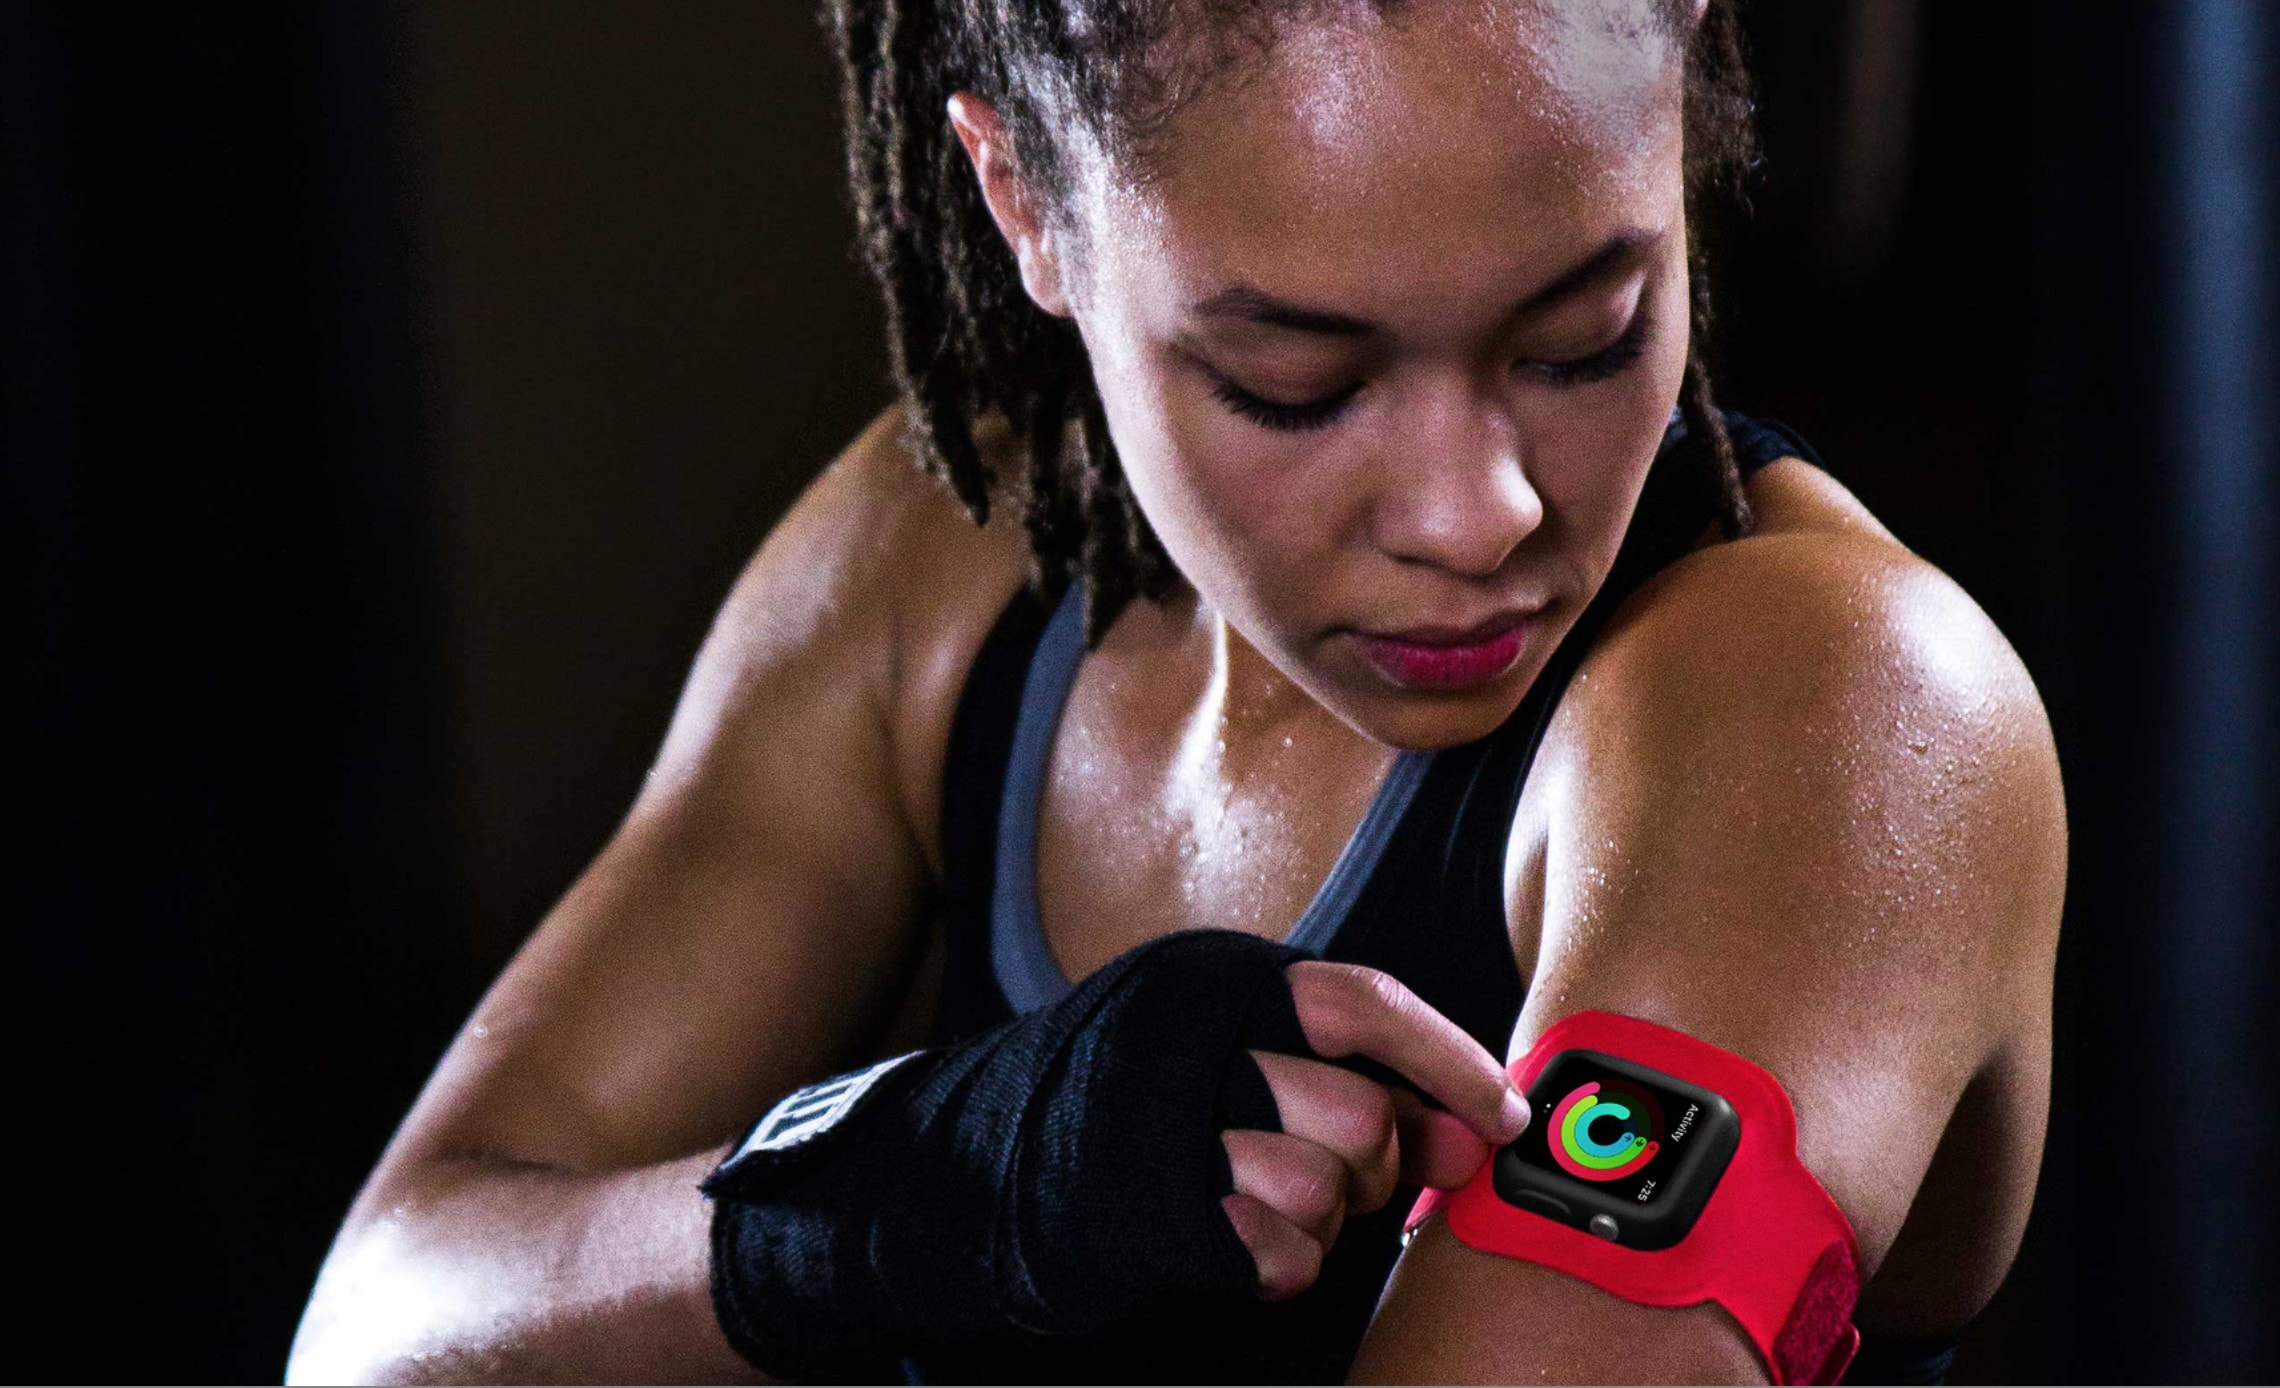 ActionSleeve maintains consistent contact with the bicep while still remaining in line of sight with a quick side glance.